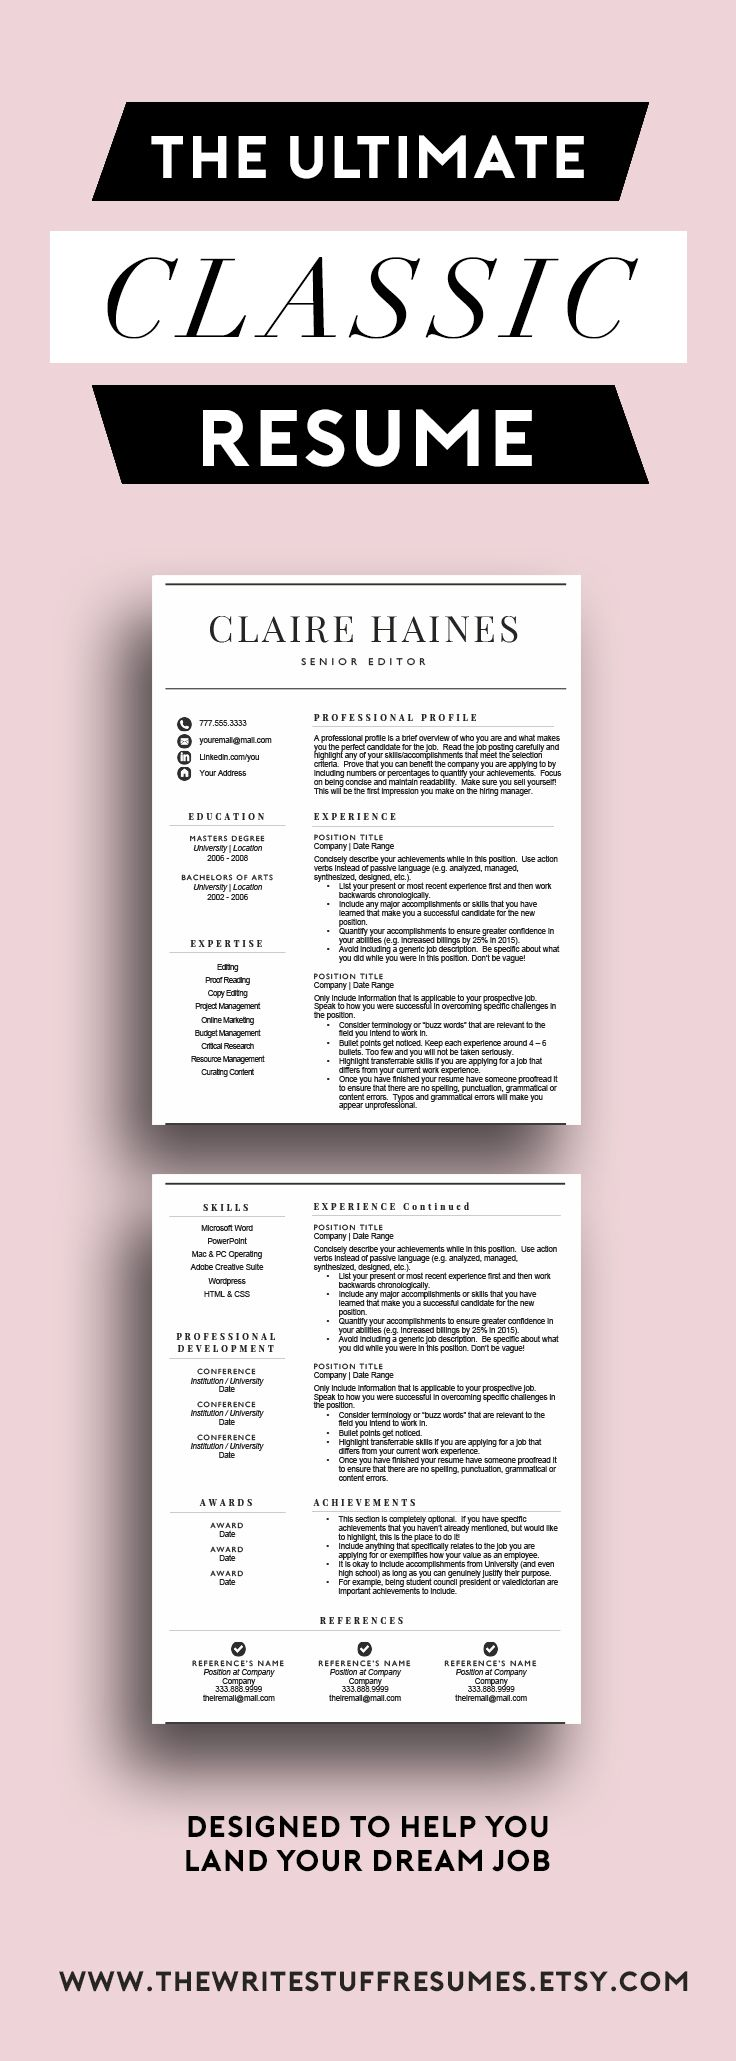 Resume Template for Word (1 & 2 page resume, cover letter